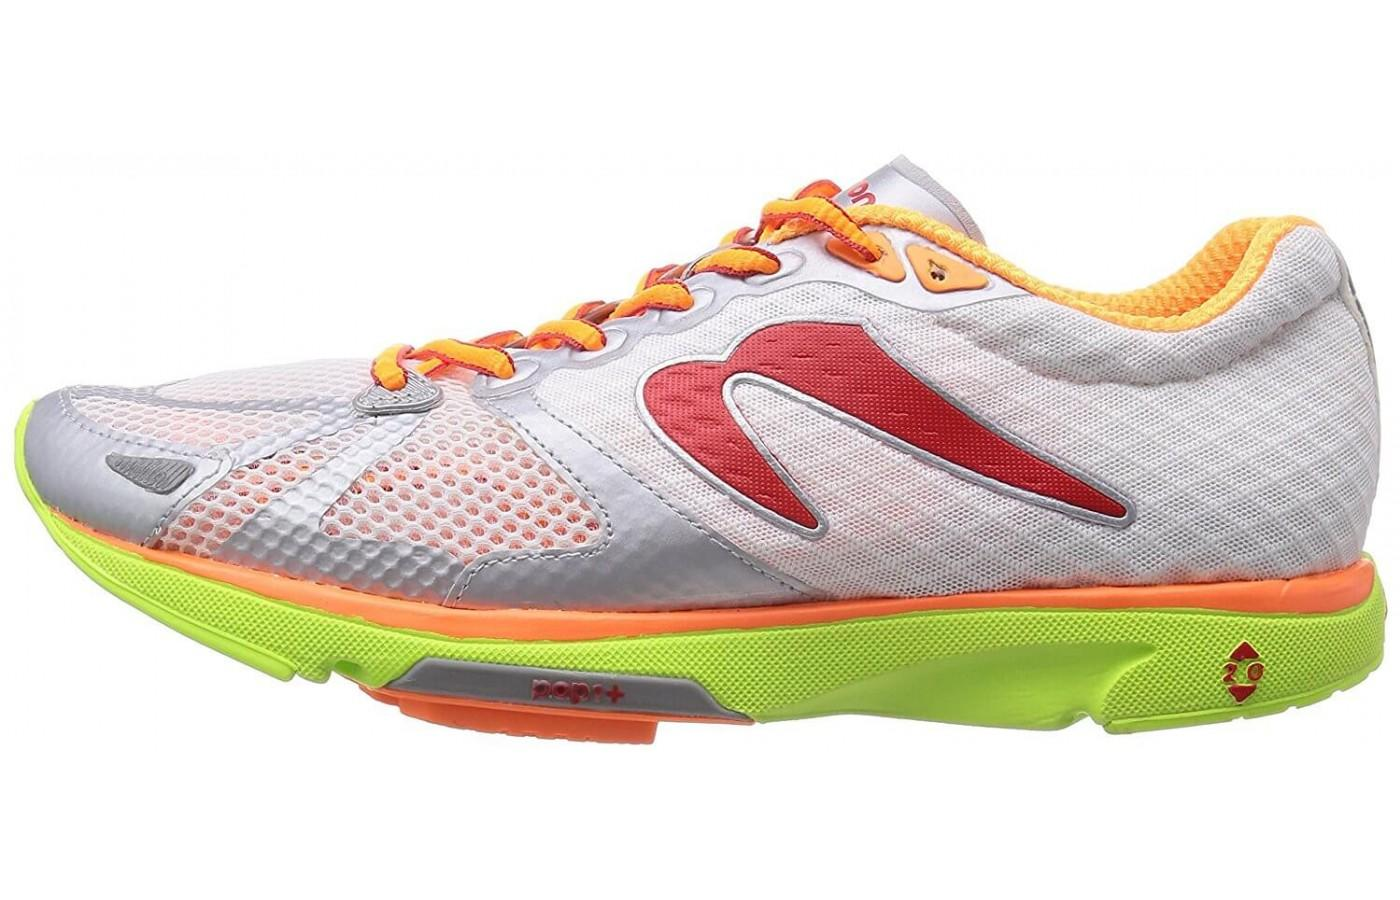 Newton Distance S IV features a breathable mesh upper